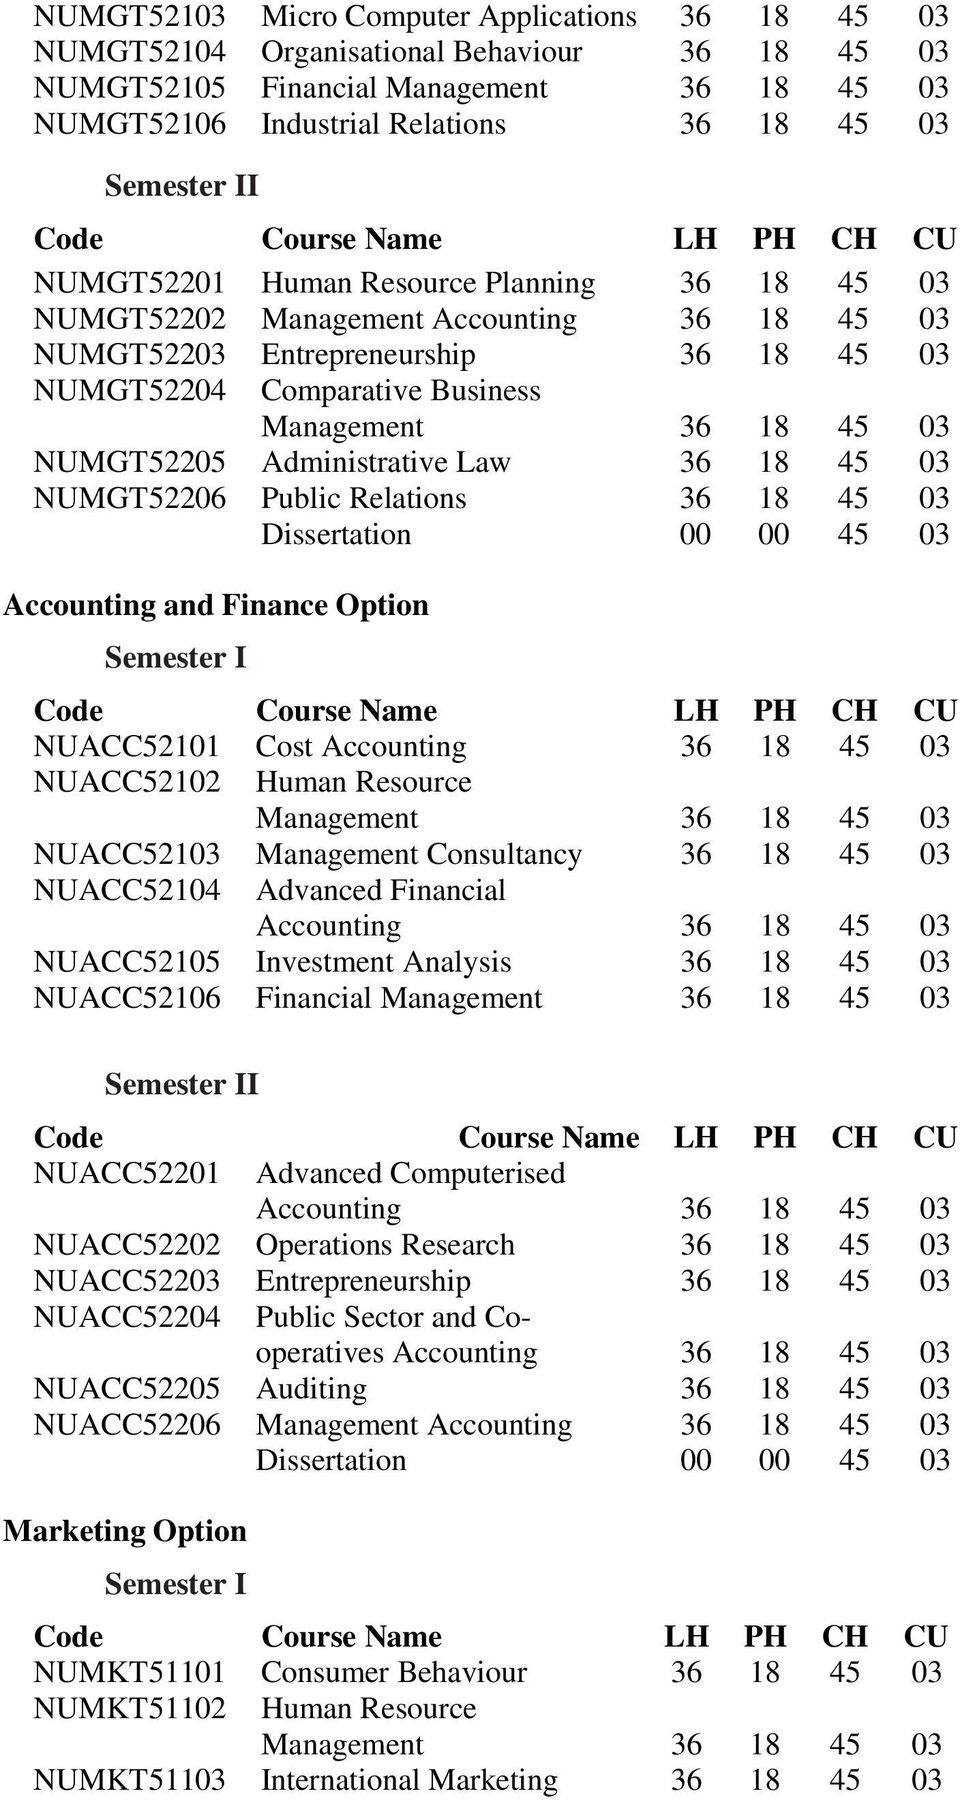 and Finance Option Semester I NUACC52101 Cost NUACC52102 Human Resource NUACC52103 Management Consultancy 36 18 45 03 NUACC52104 Advanced Financial NUACC52105 Investment Analysis 36 18 45 03